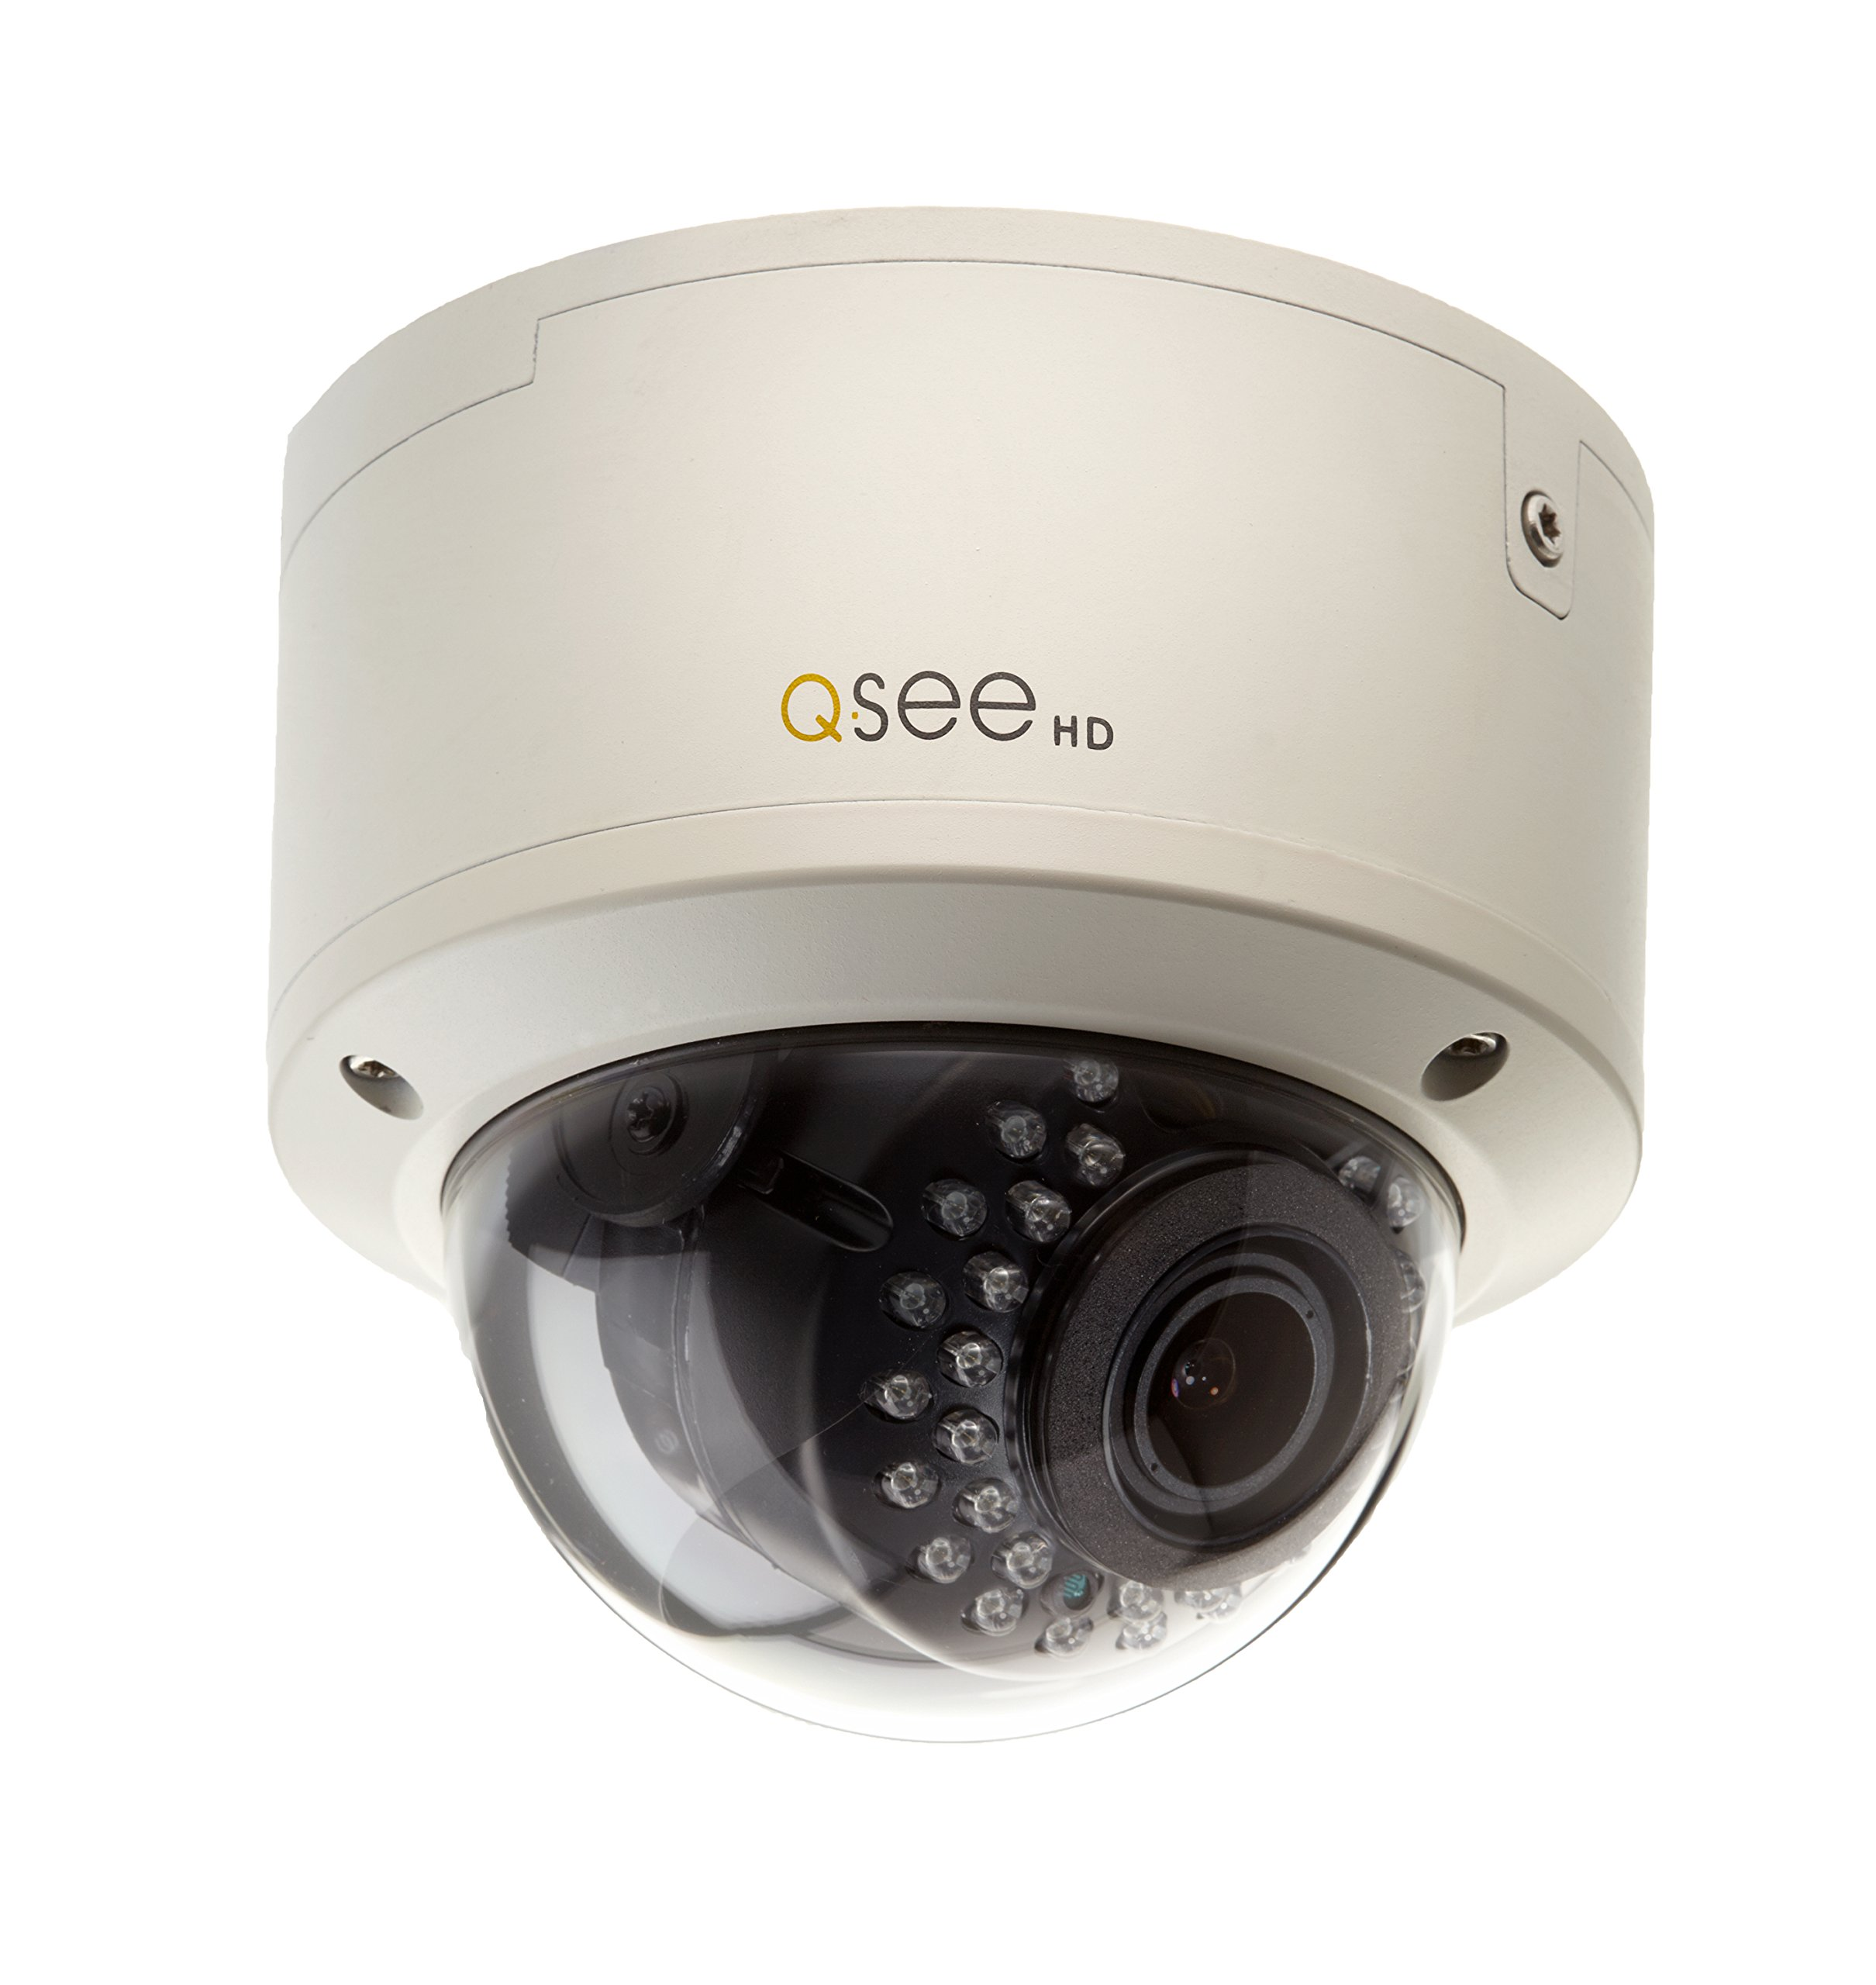 Q-See QTH8078BA 1080p High Definition Analog, Auto Focus Dome Security Camera